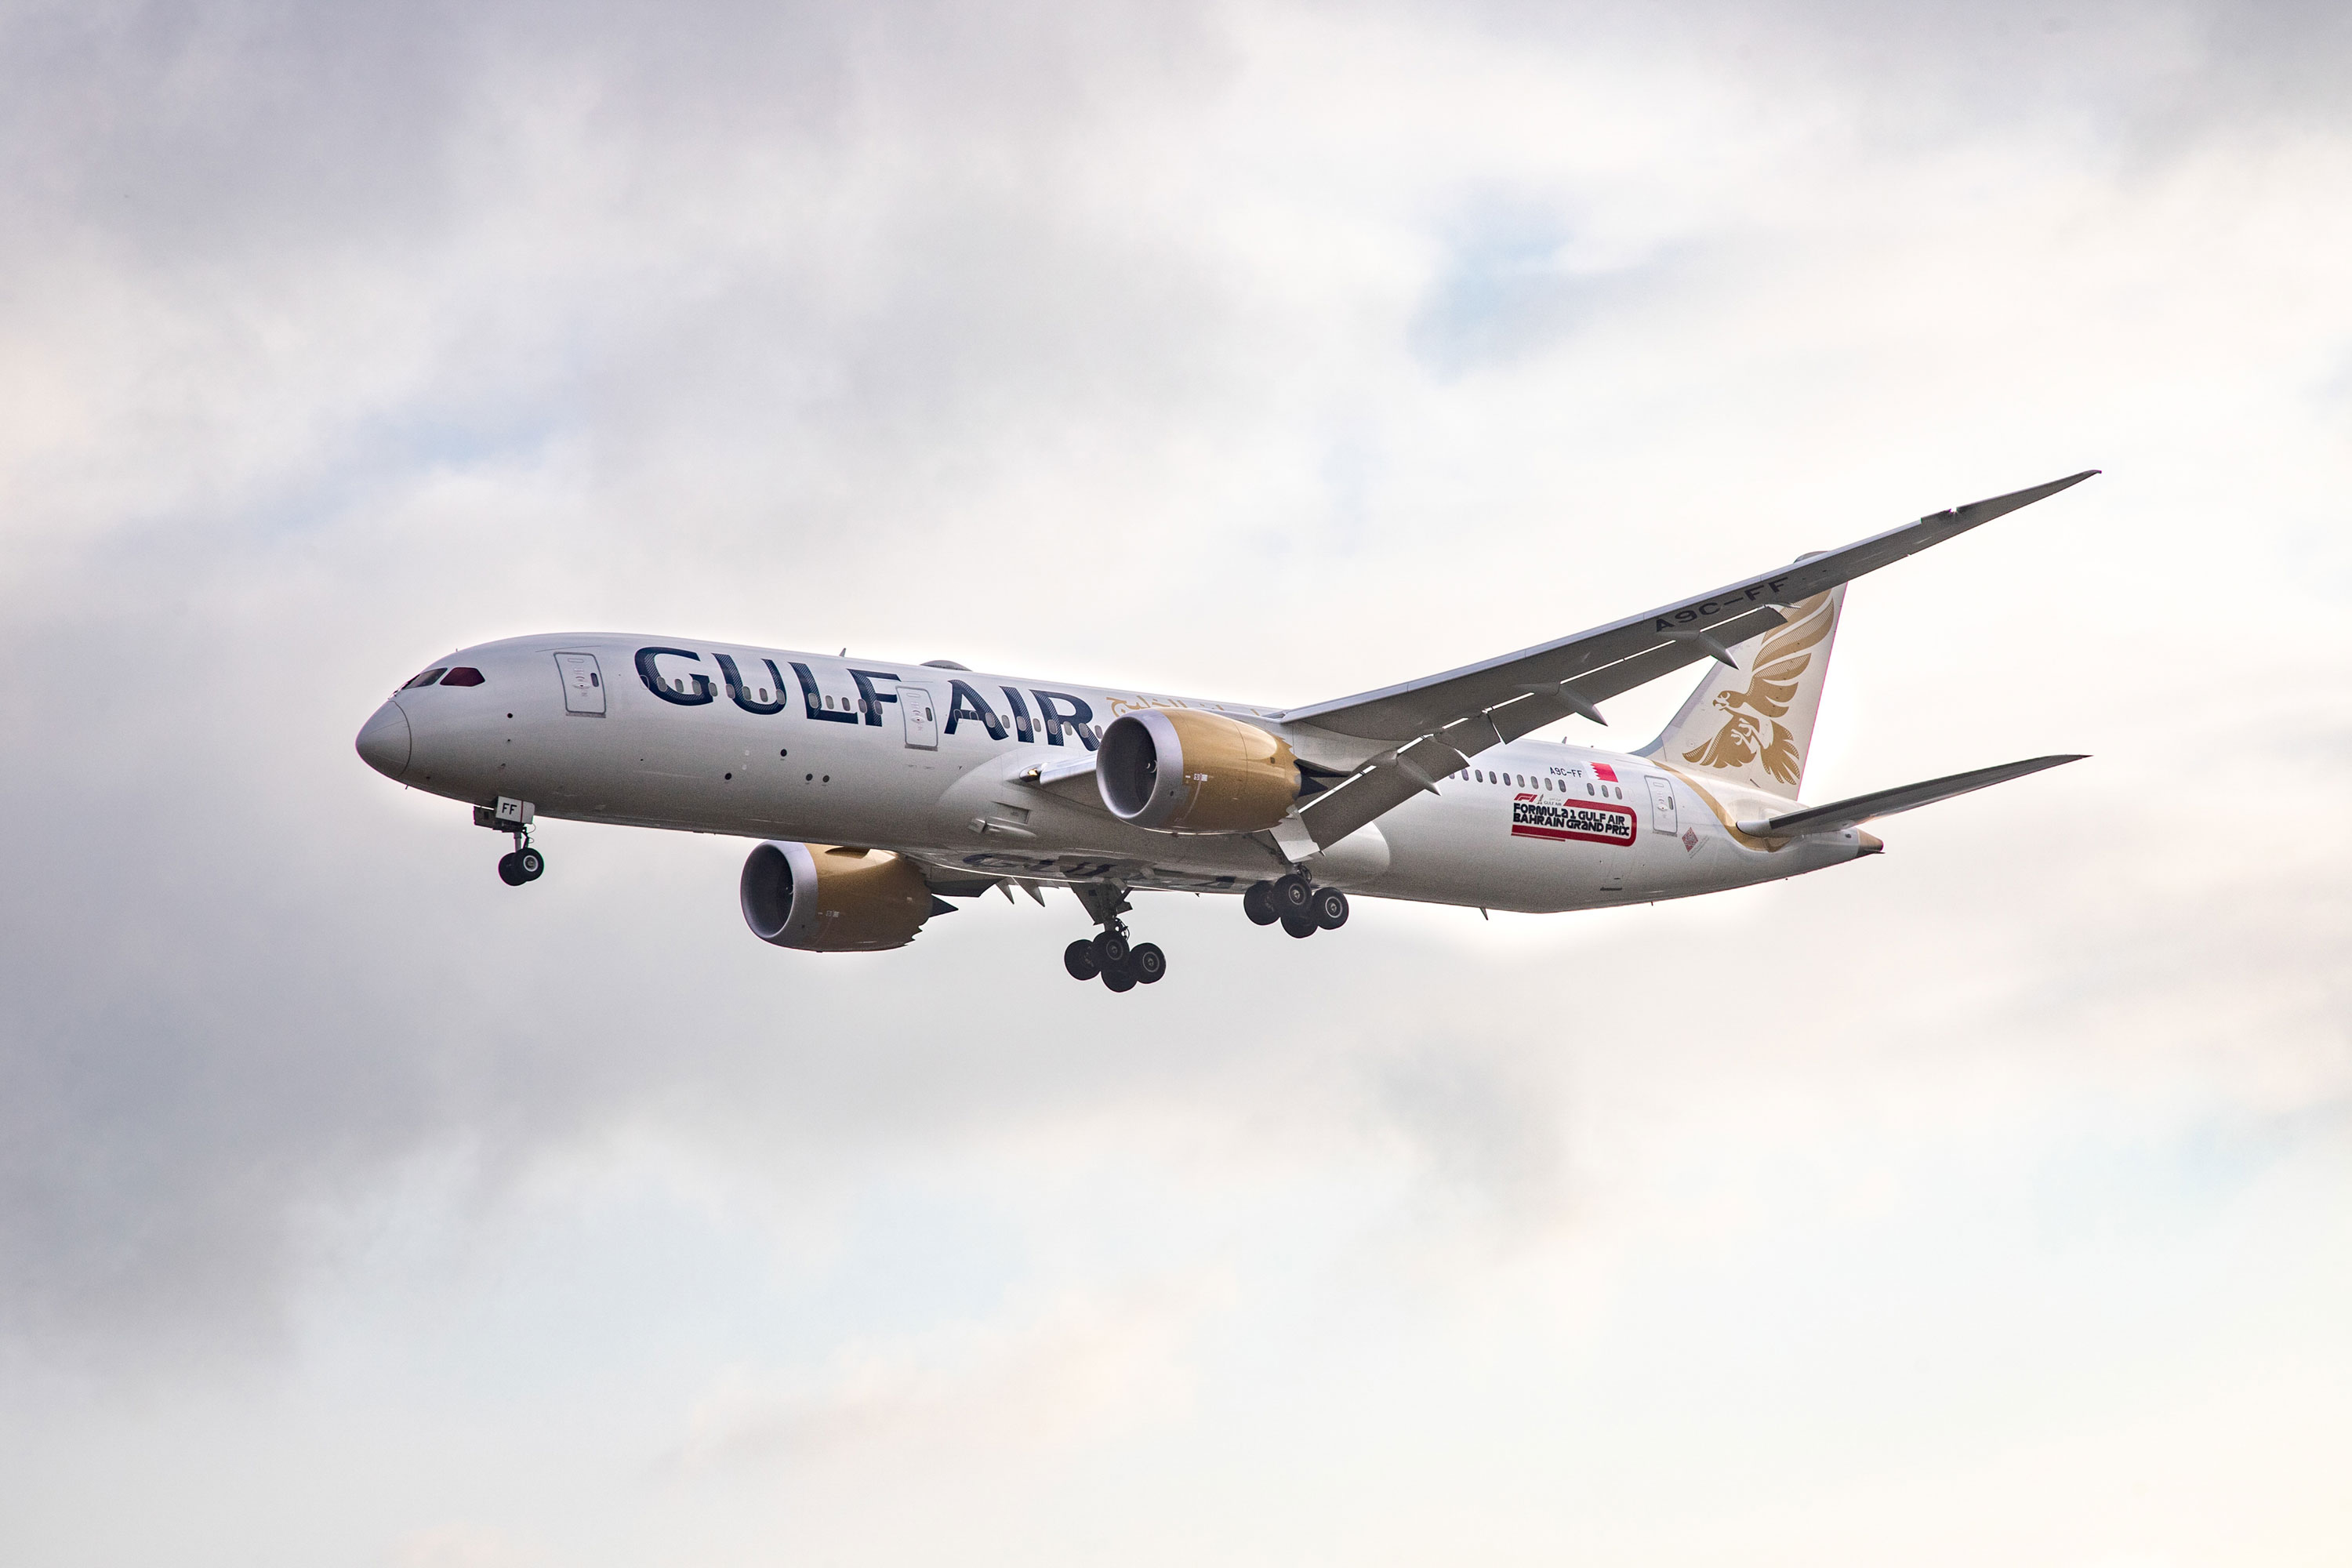 A Gulf Air Boeing aircraft approaches London Heathrow International Airport on October 10, 2019.